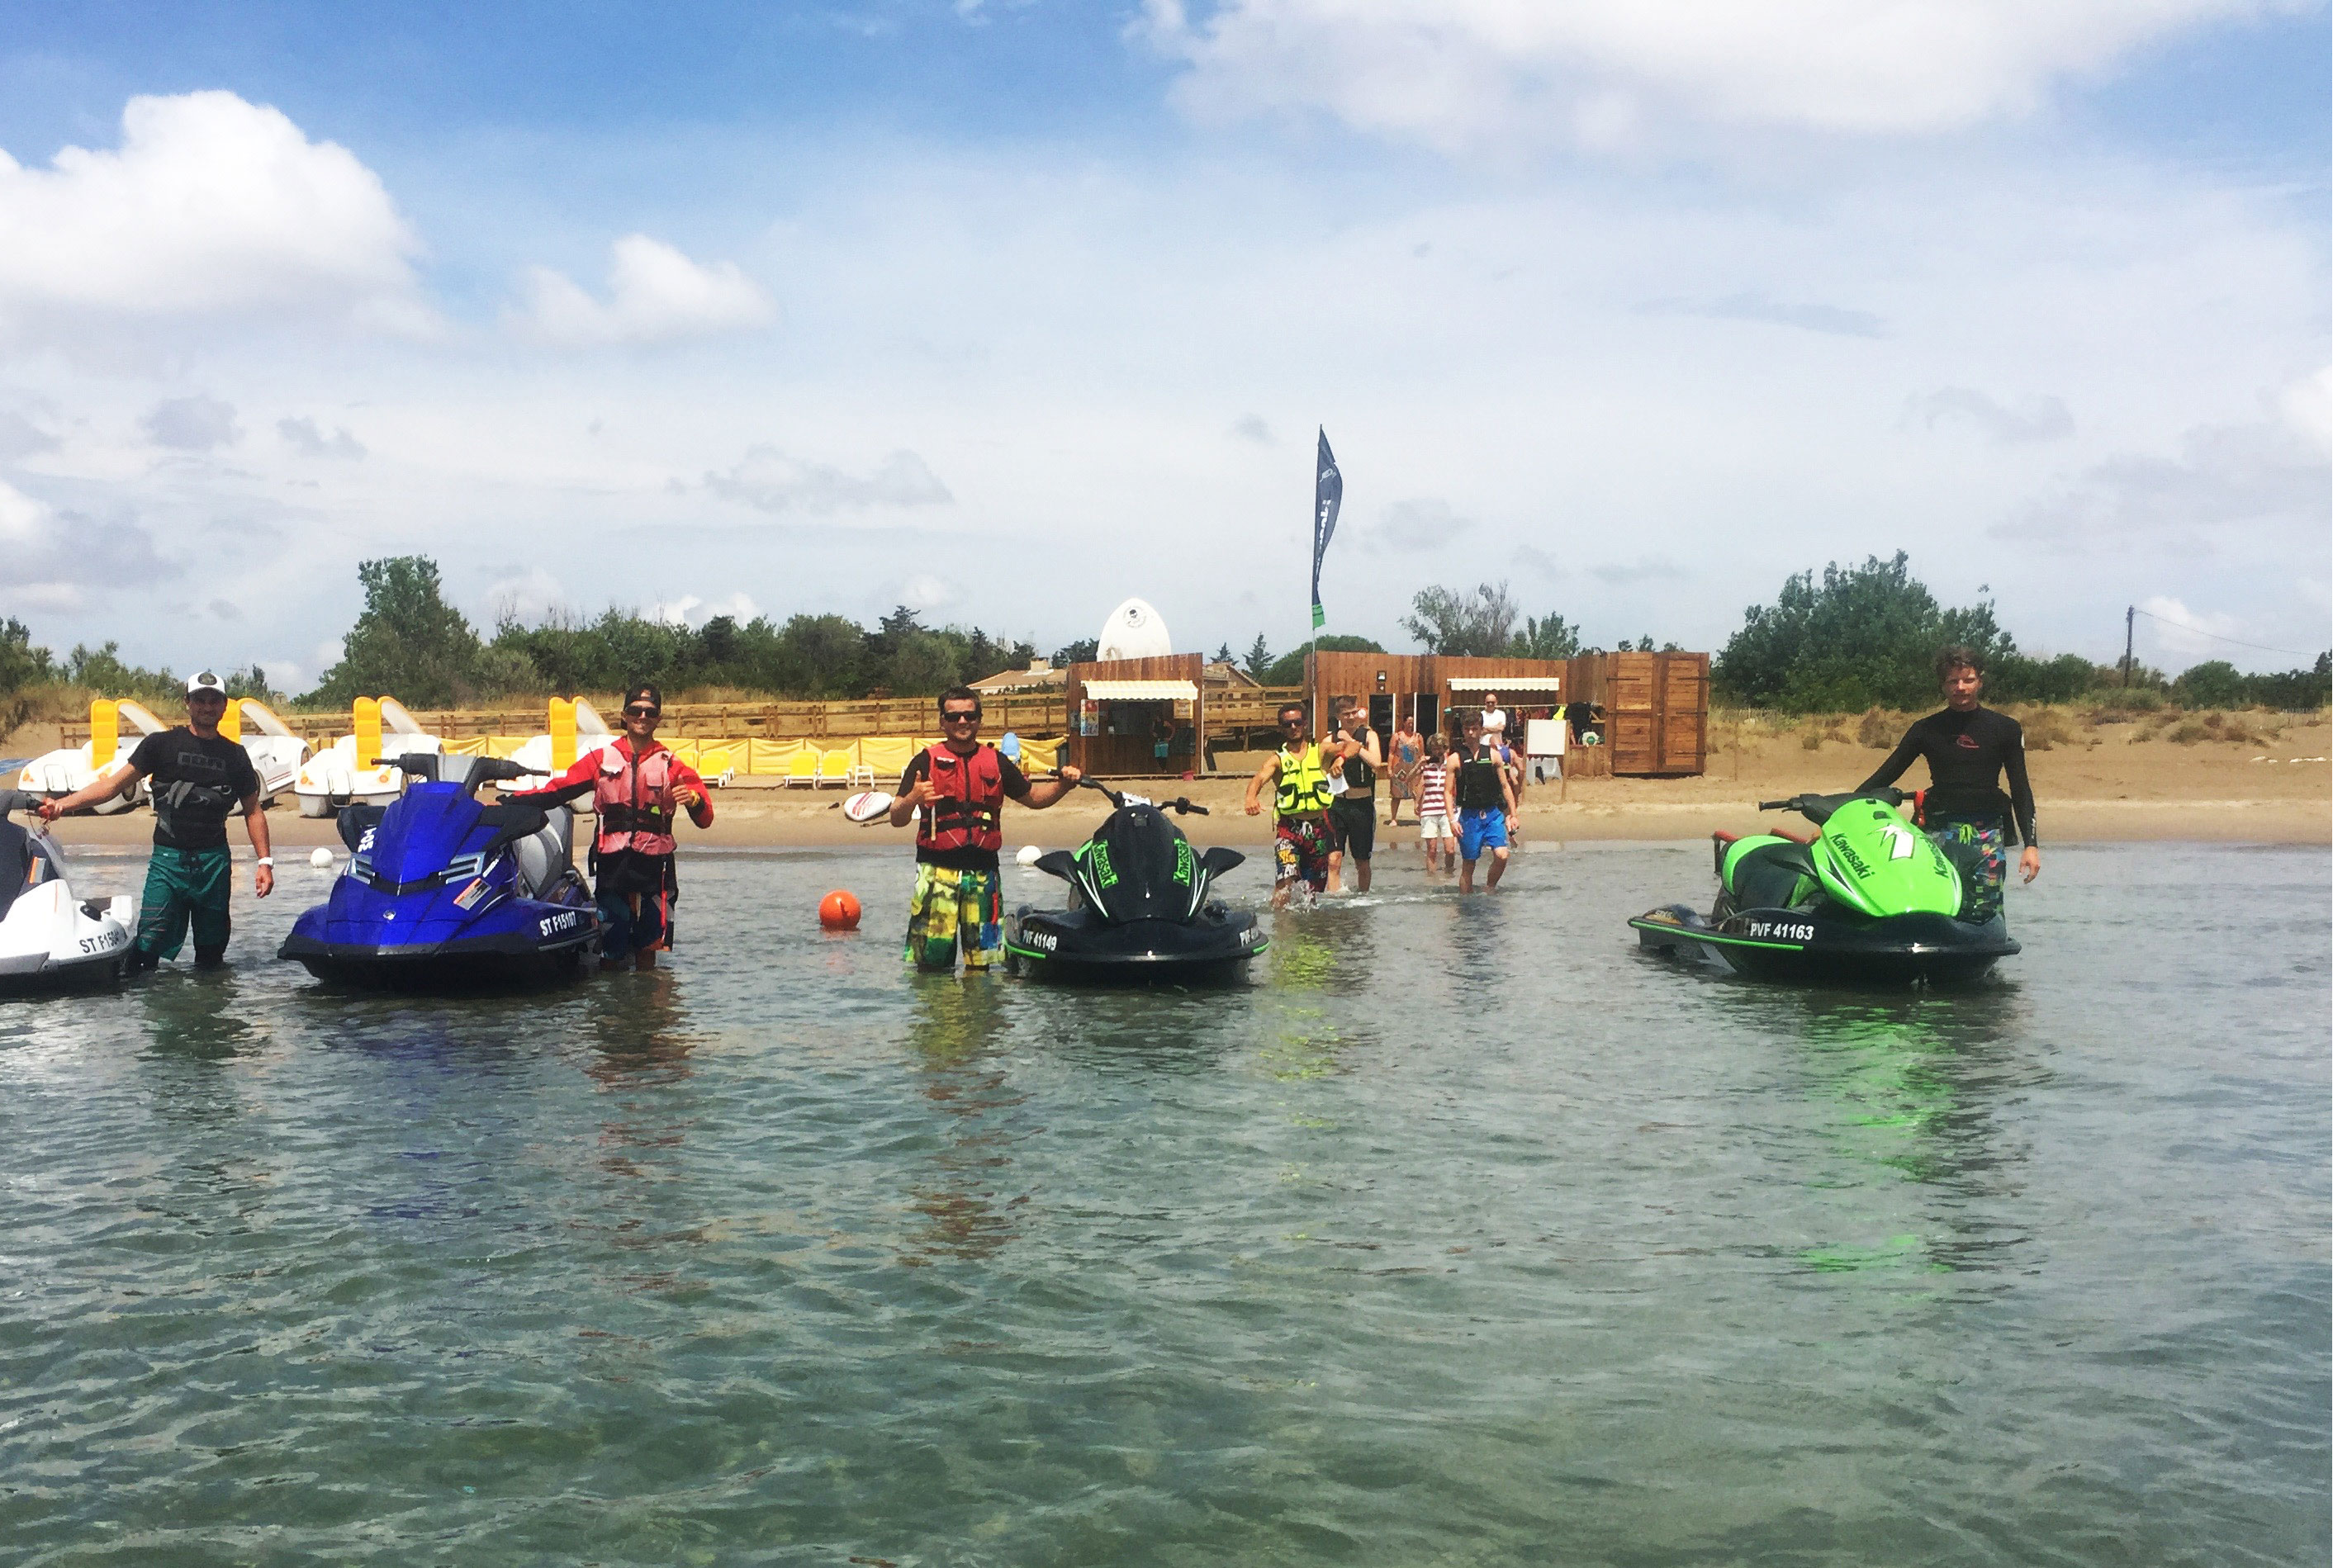 sorties jetski playa watersports